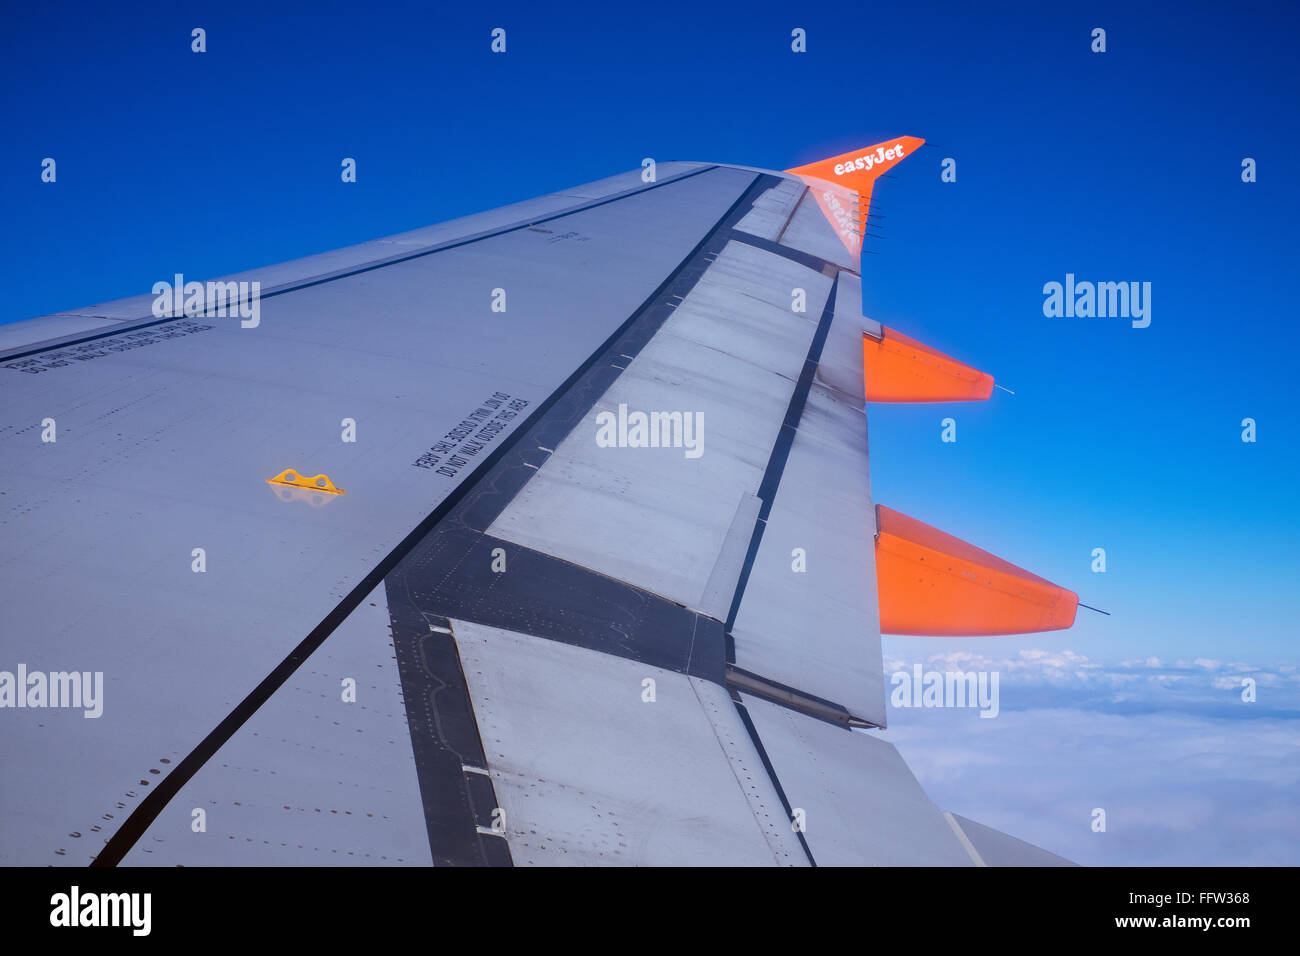 View of wing tip of Easyjet plane in flight - Stock Image